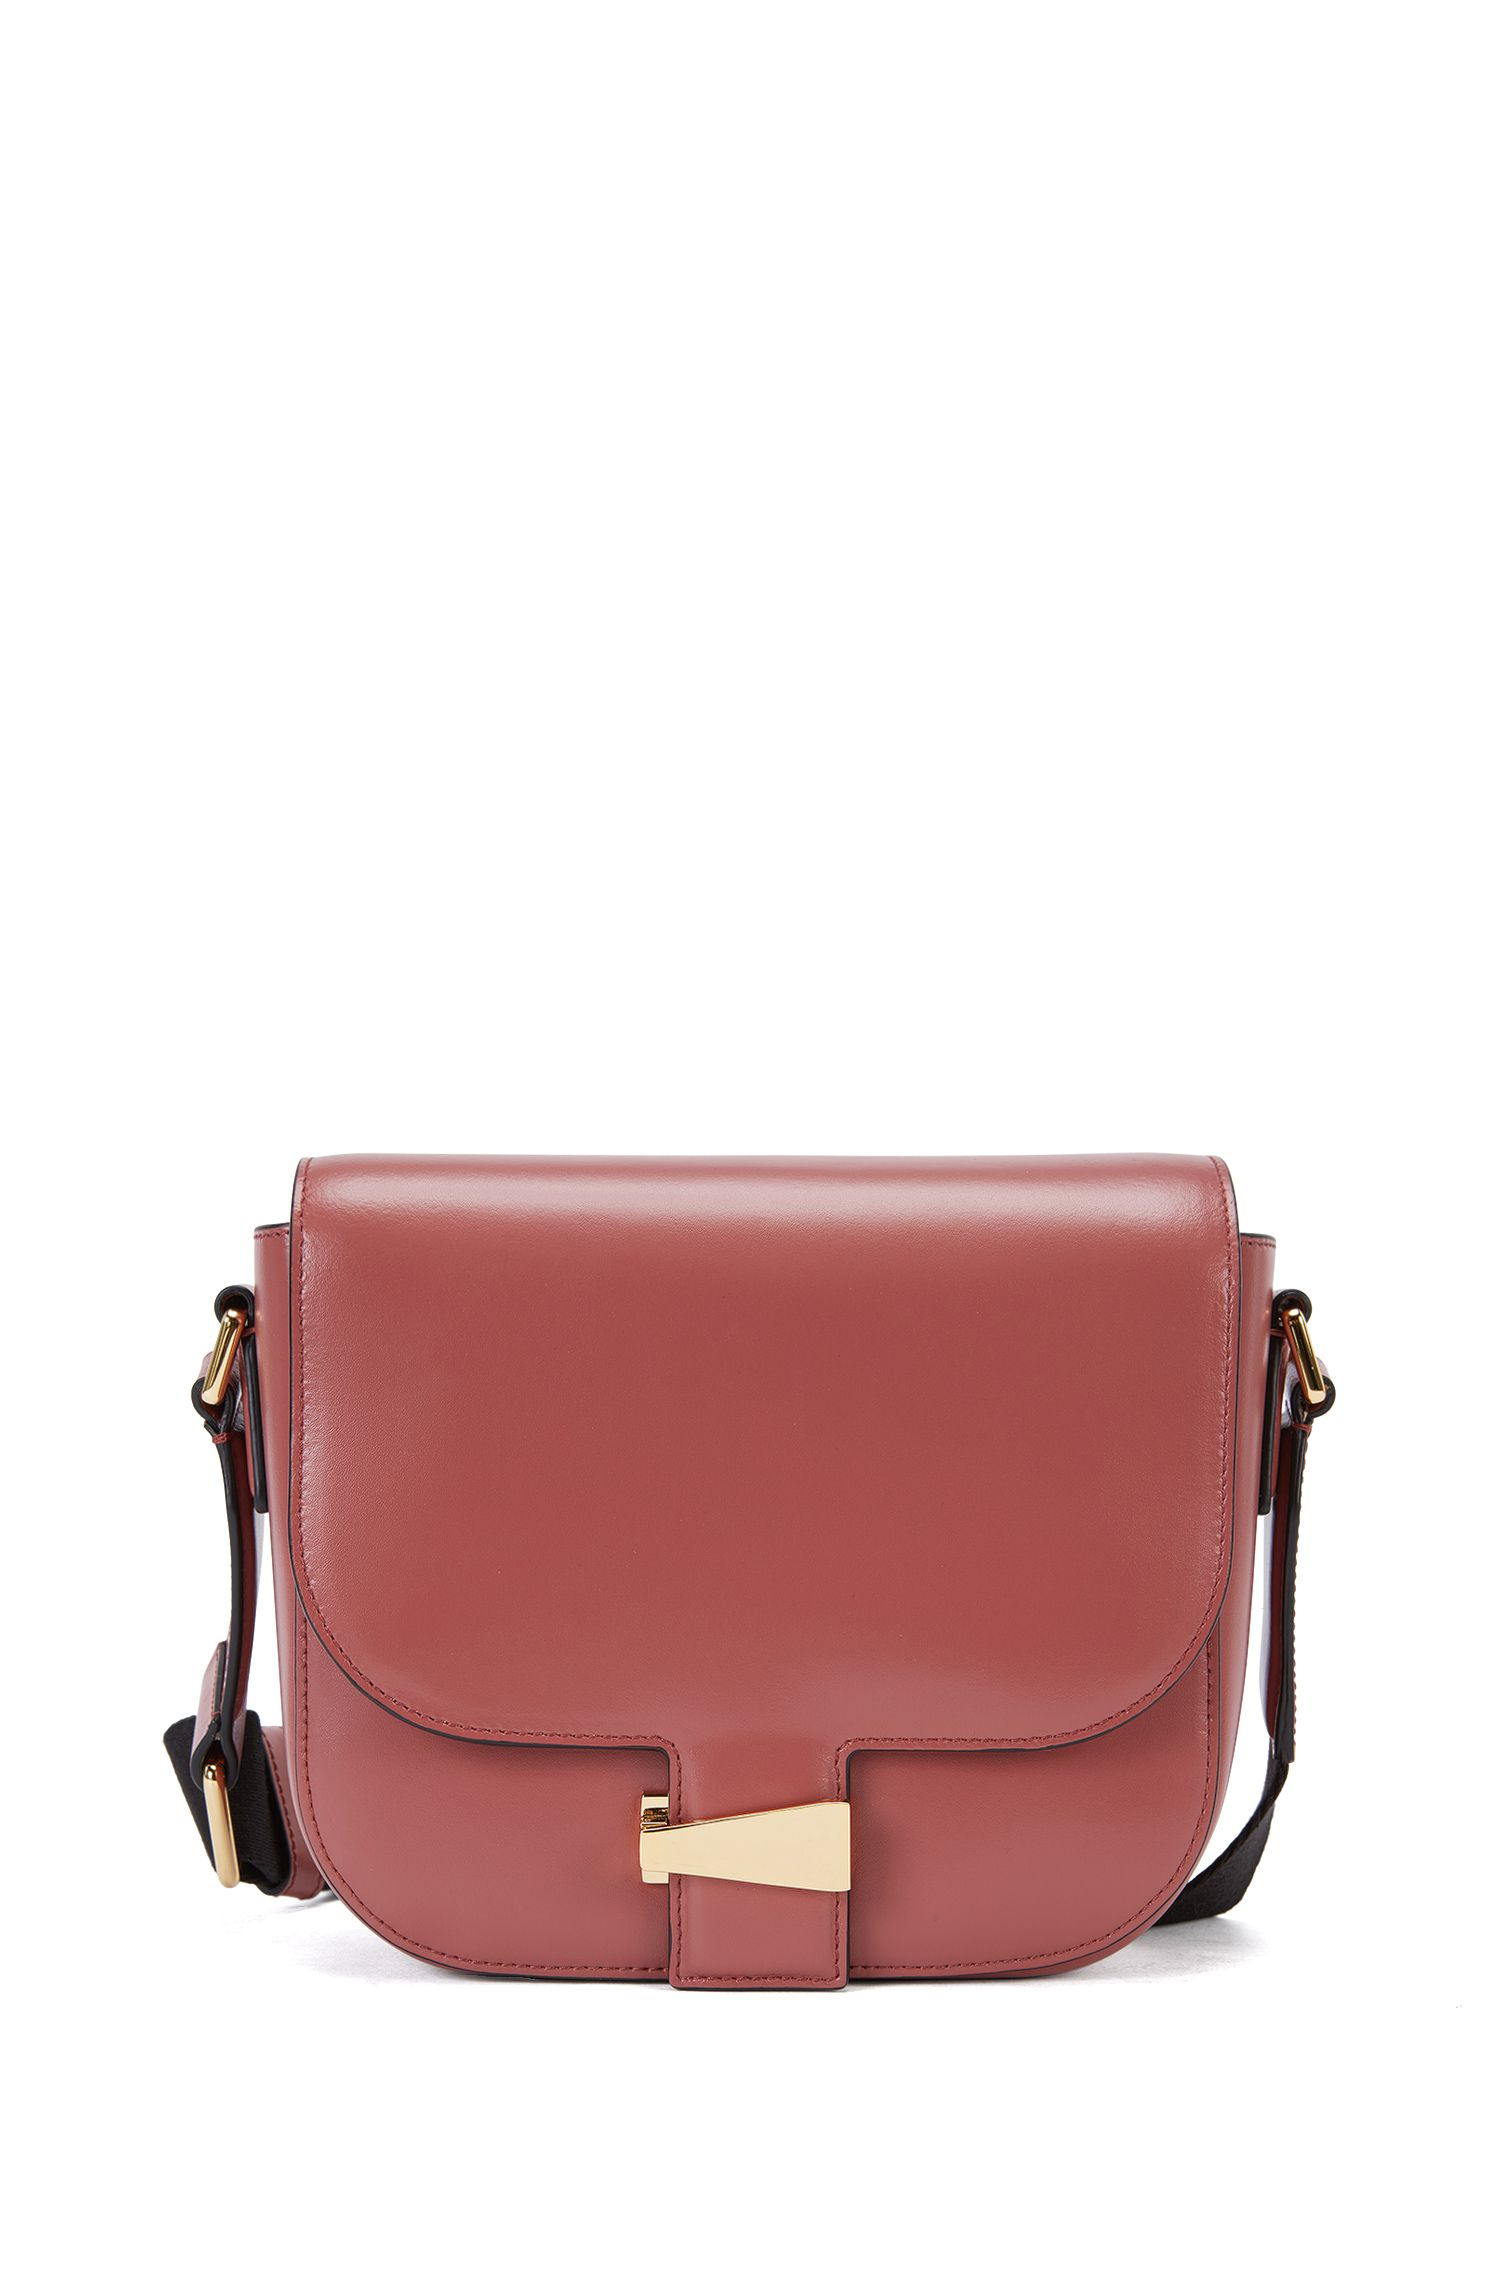 Leather shoulder bag with flap closure